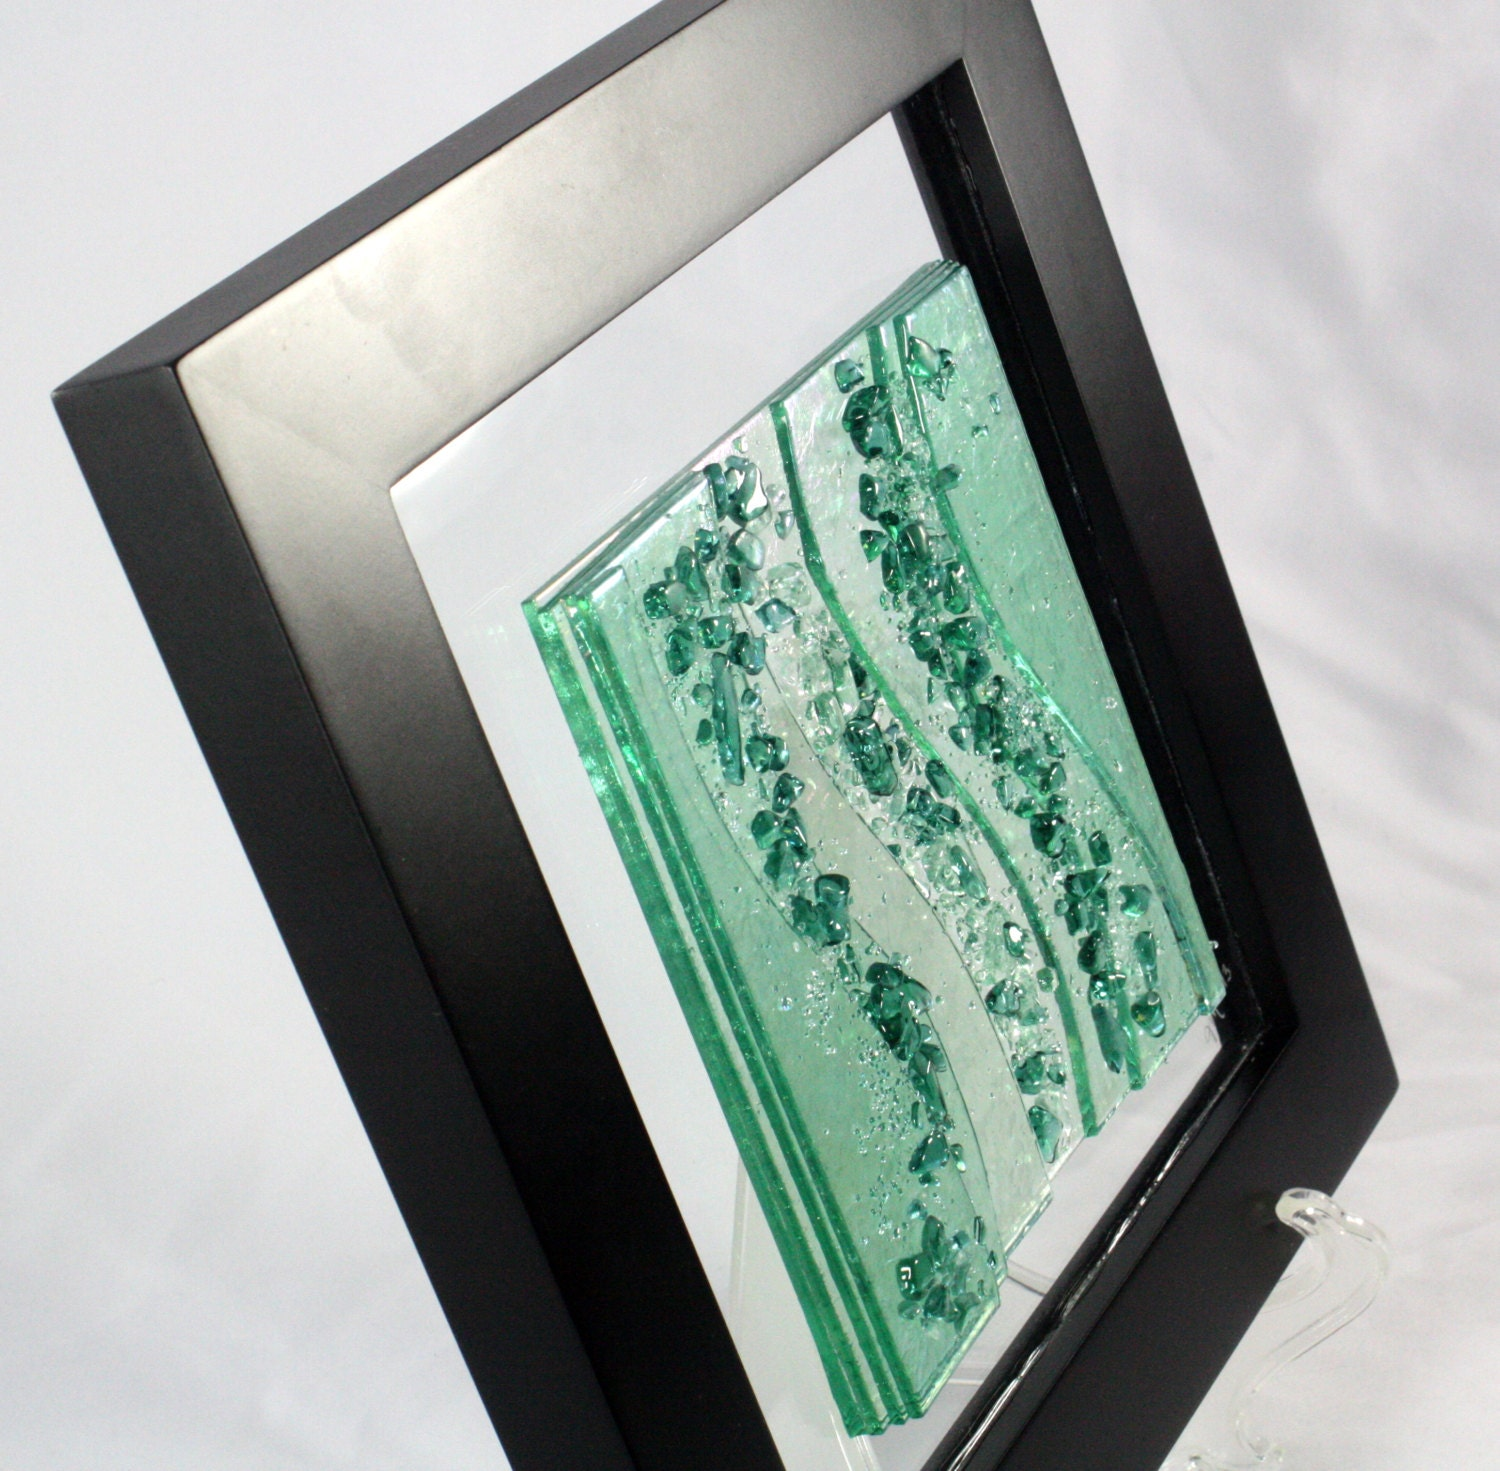 Wall Art Fused Glass : Fused glass wall art sea green waves made to order